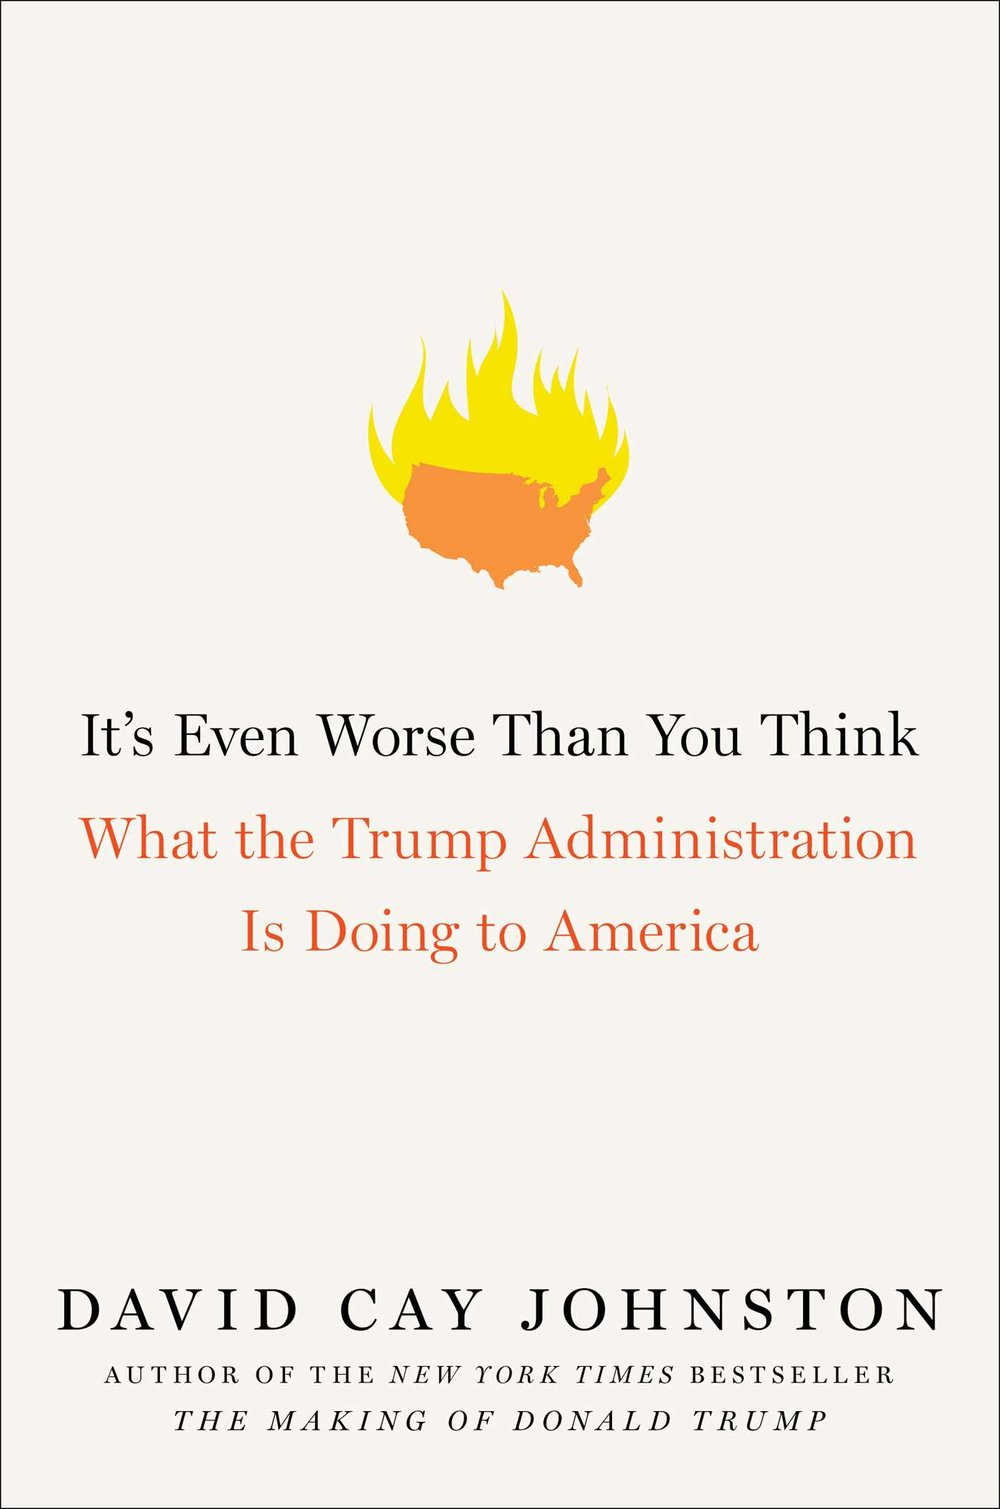 Its Even Worse Than You Think by David Cay Johnston.jpg